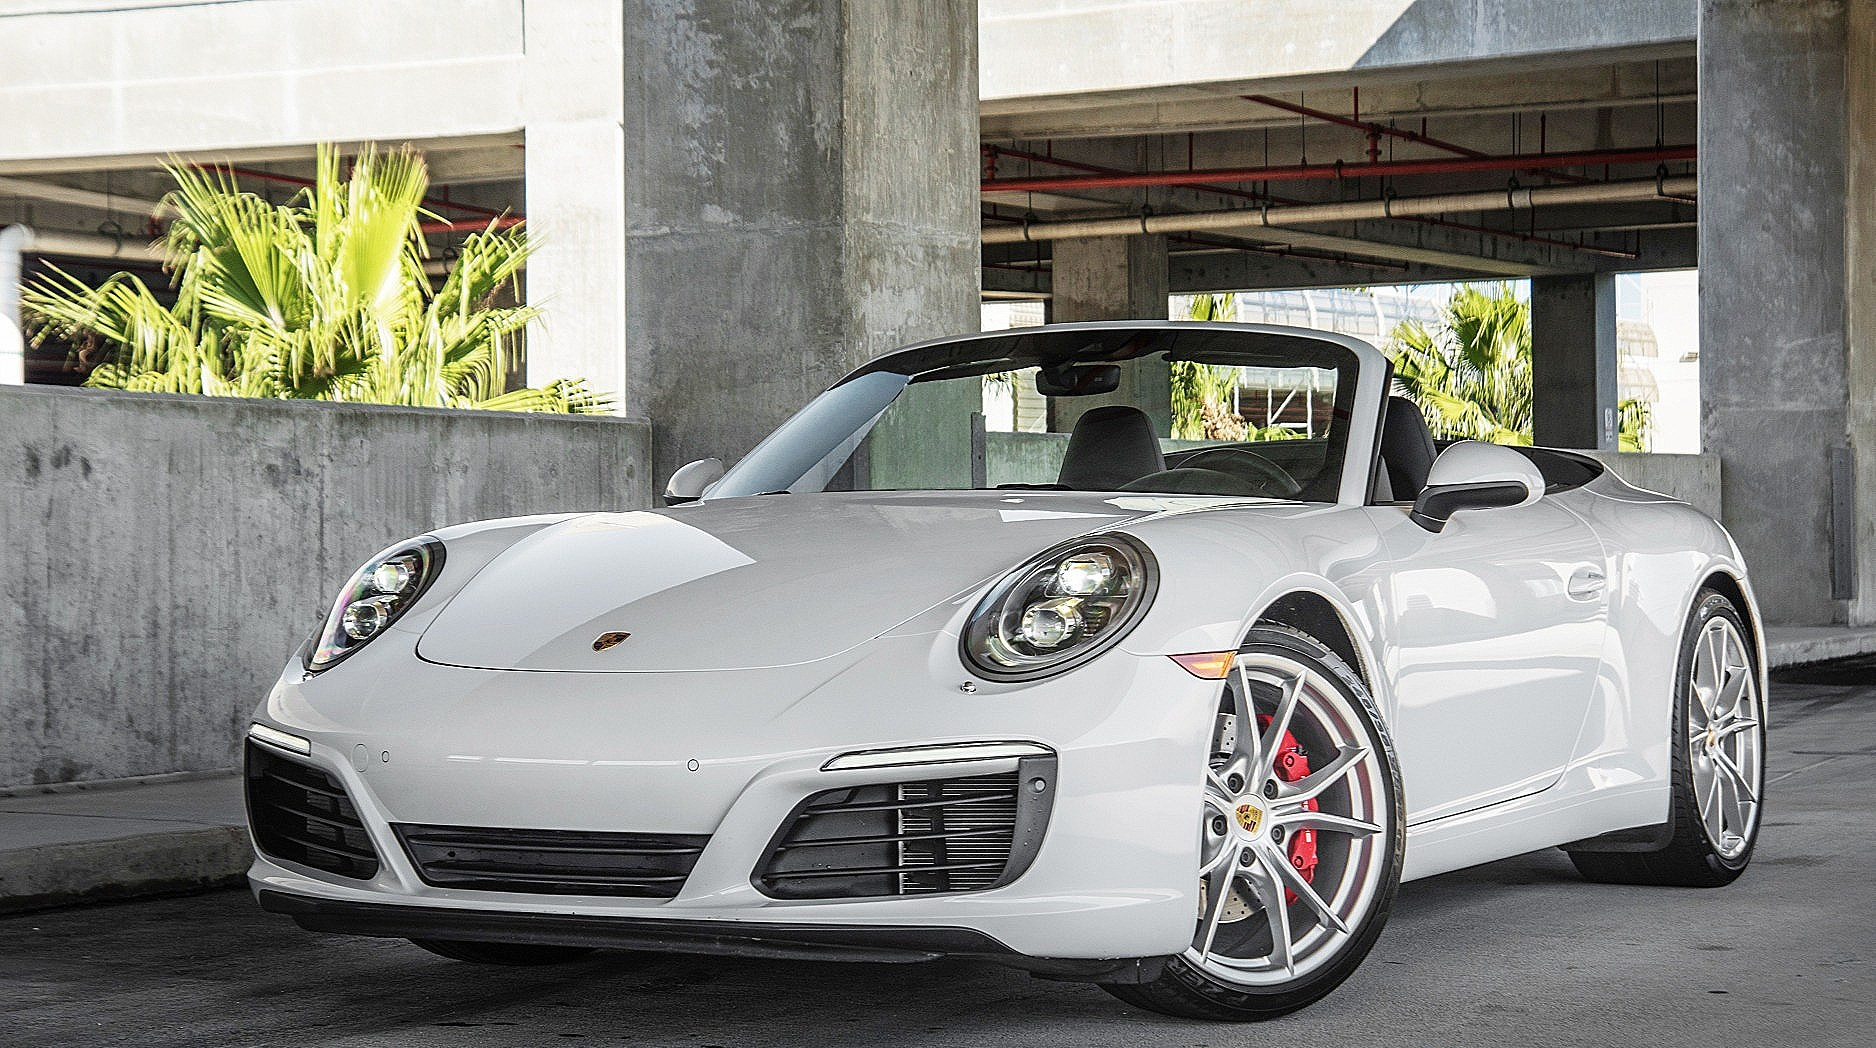 Porsche Carrera Convertible 4S - Color | White